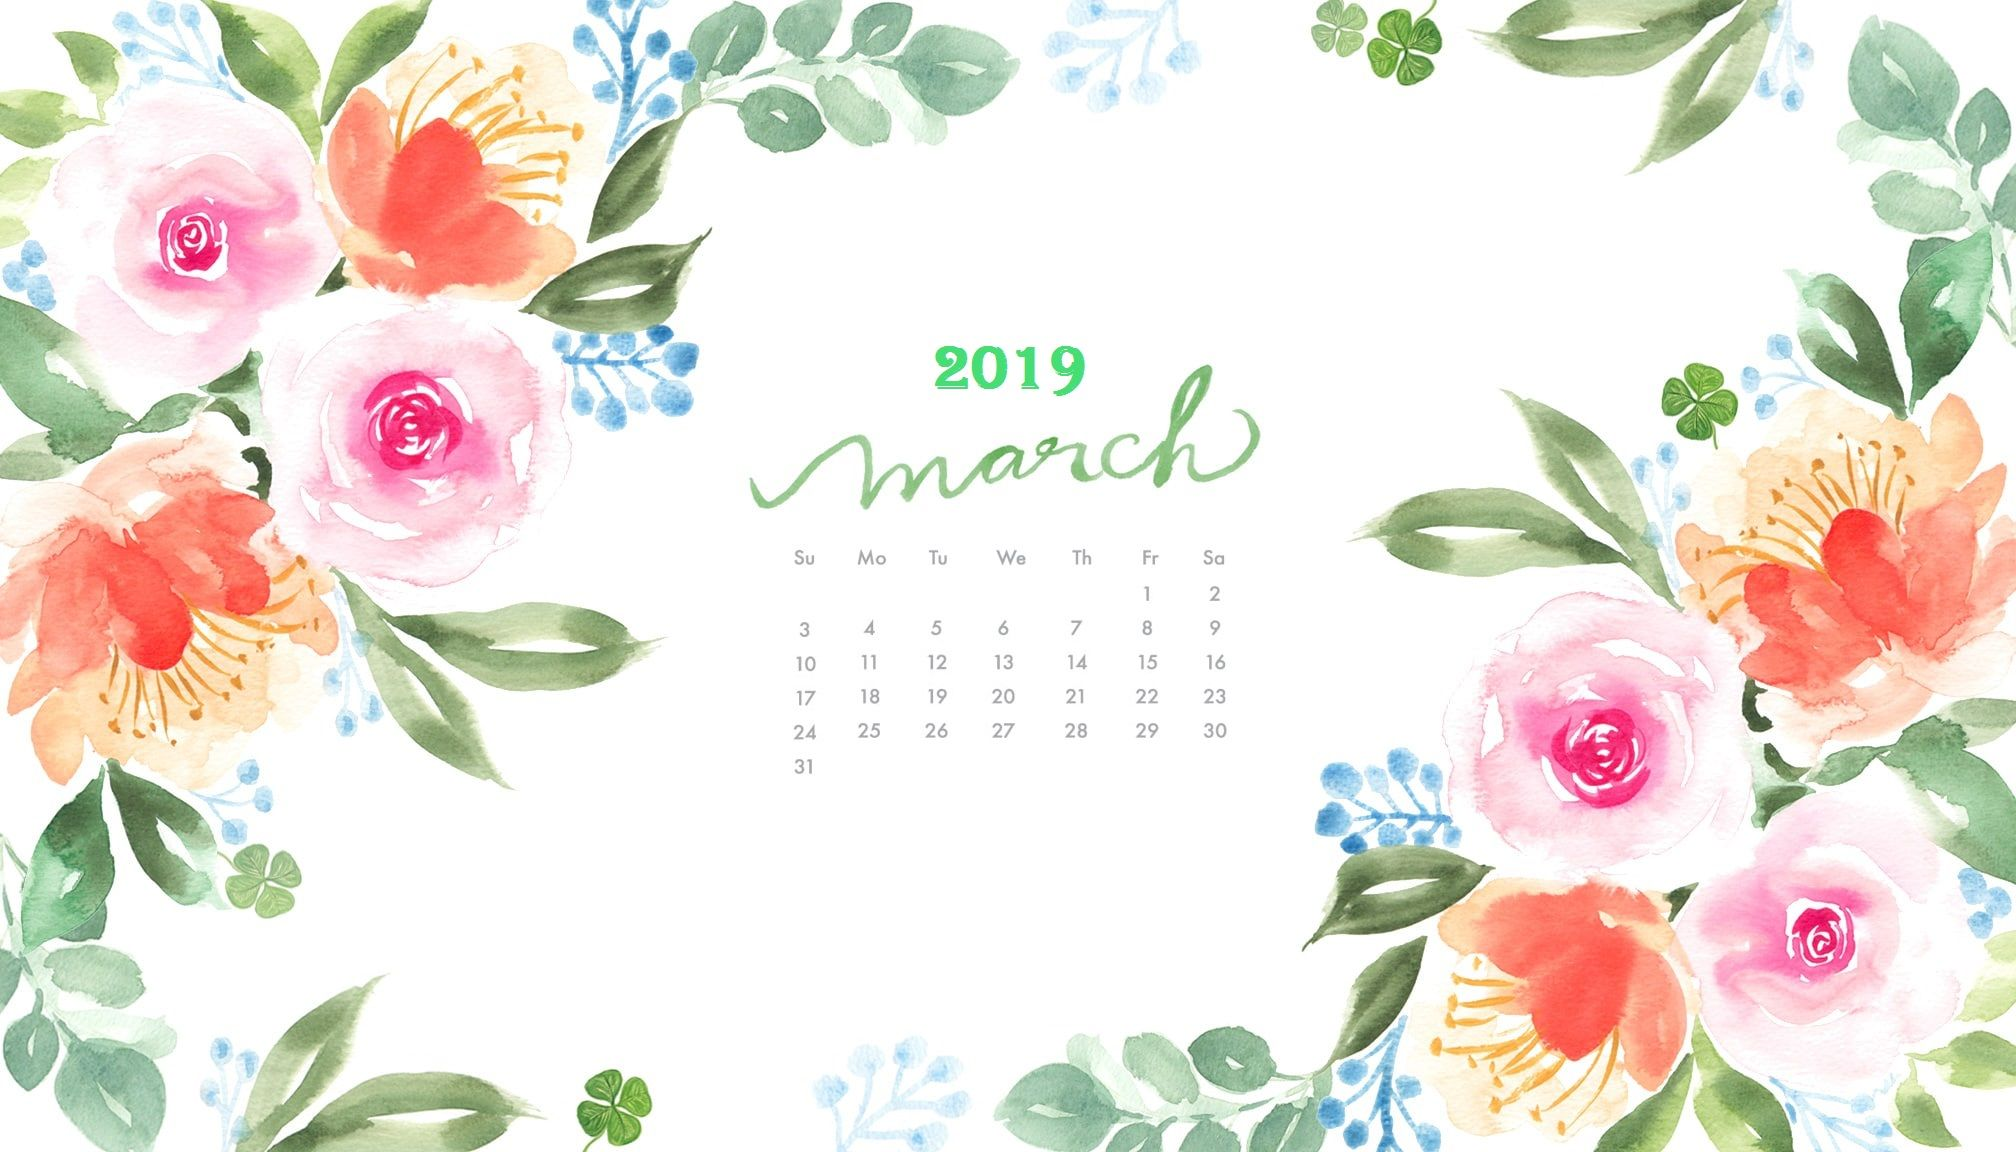 March 2019 Watercolor Calendar Wallpaper Desktop Wallpaper Calendar Calendar Wallpaper Floral Wallpaper Desktop